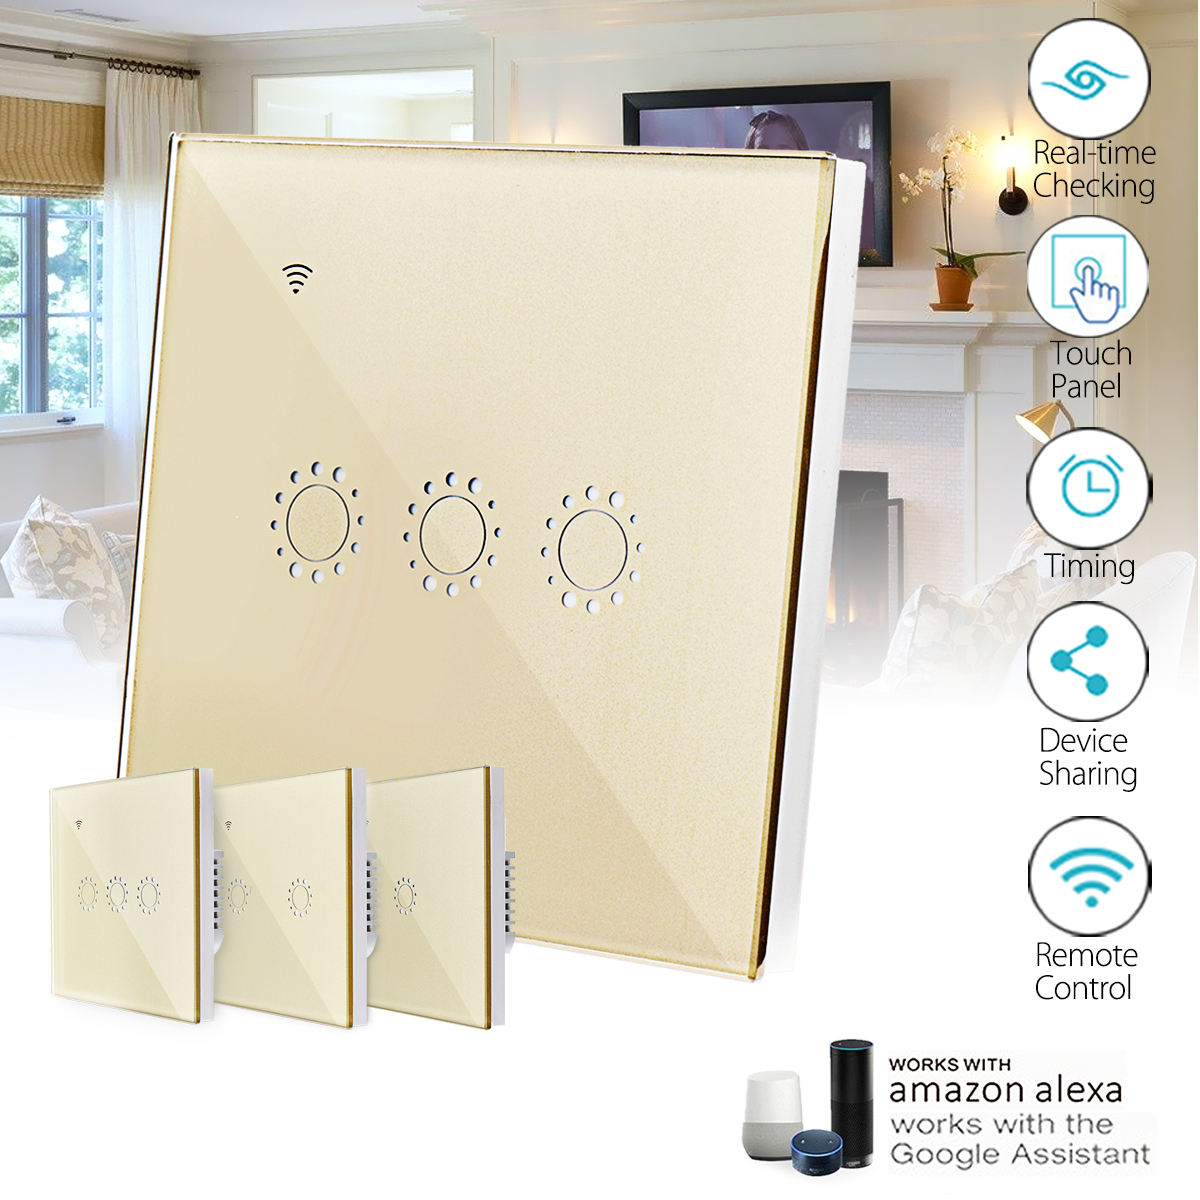 86mm WIFI Smart Wall Touch Switch Panel Housing APP Control For Echo Alexa Google Home